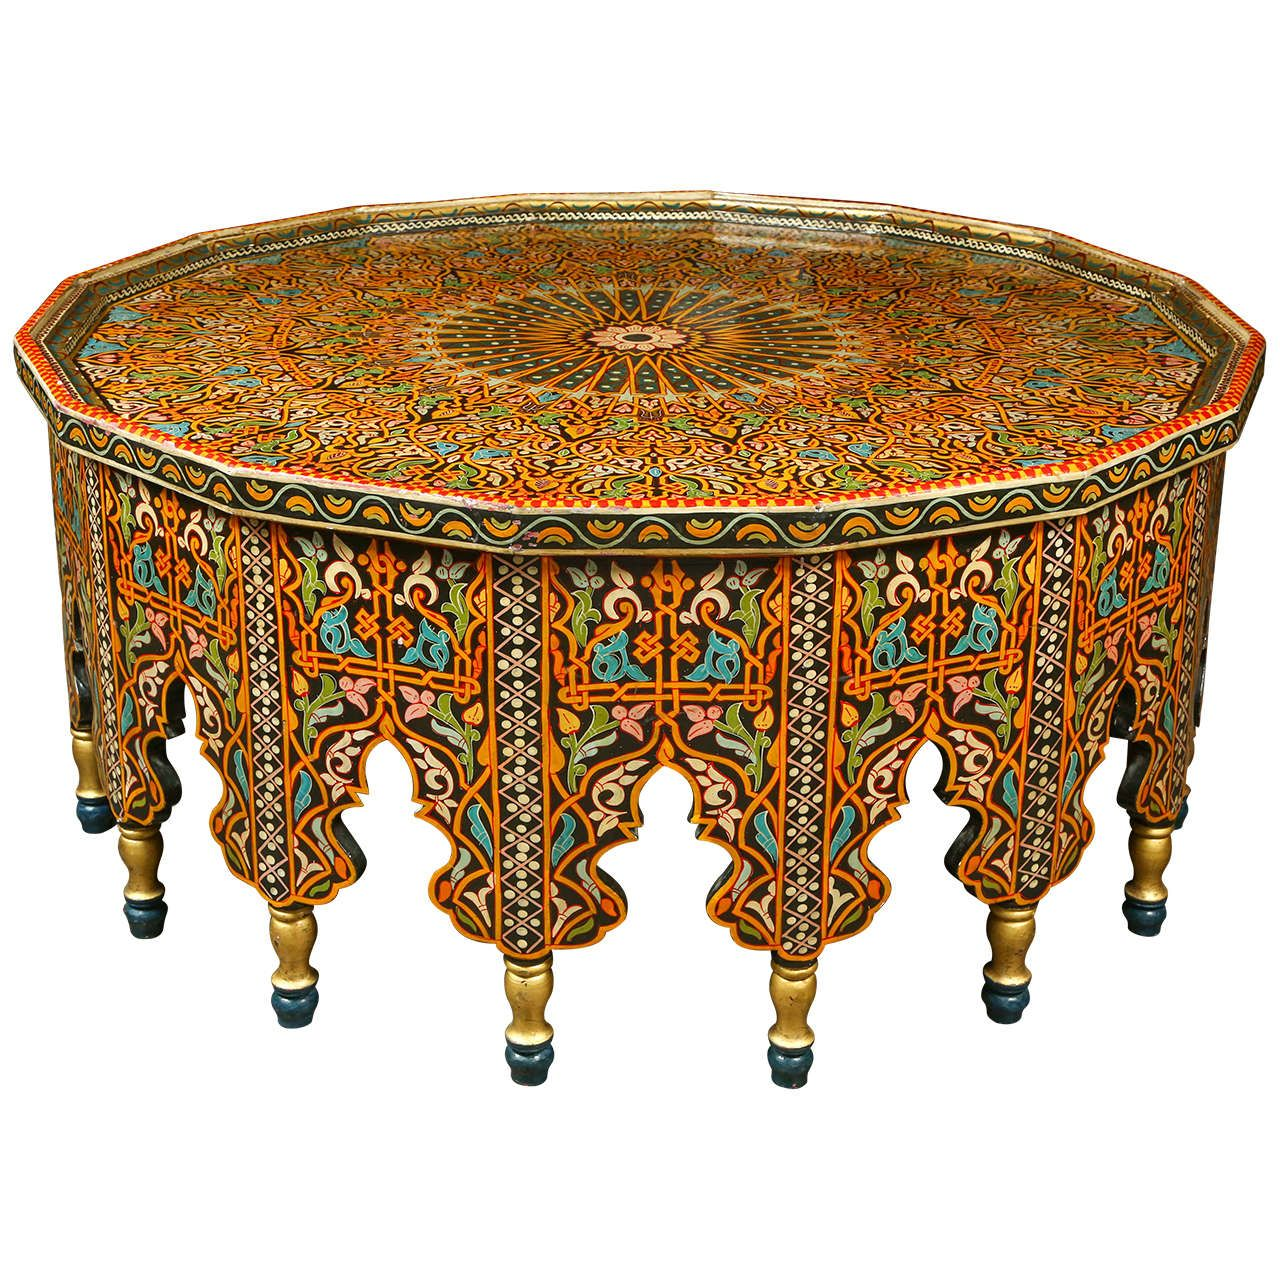 Mueble Marroqui Fabulous Moroccan Coffee Table En 2018 Muebles